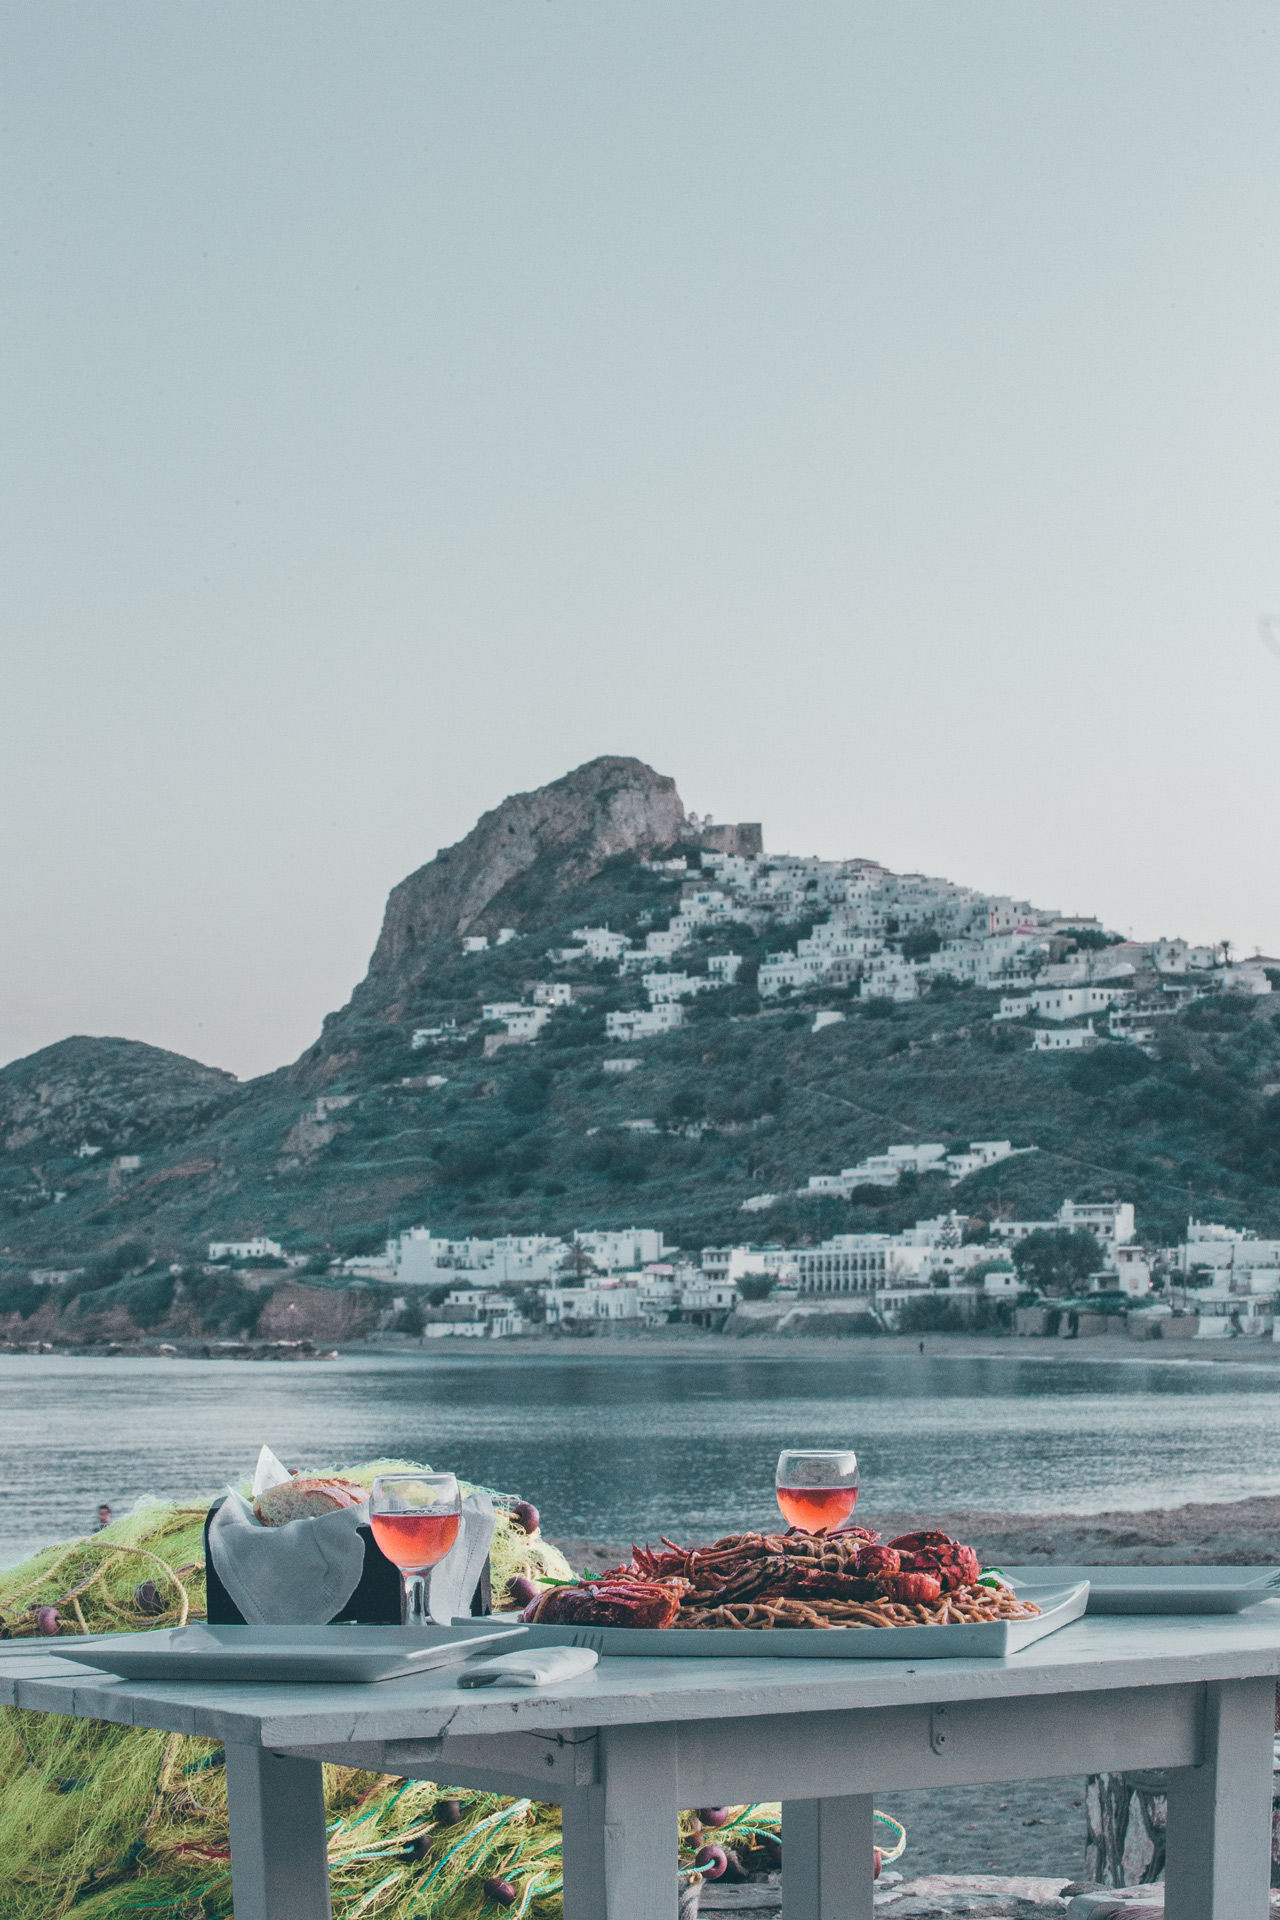 Skyros has been famous for its plentiful lobsters since antiquity